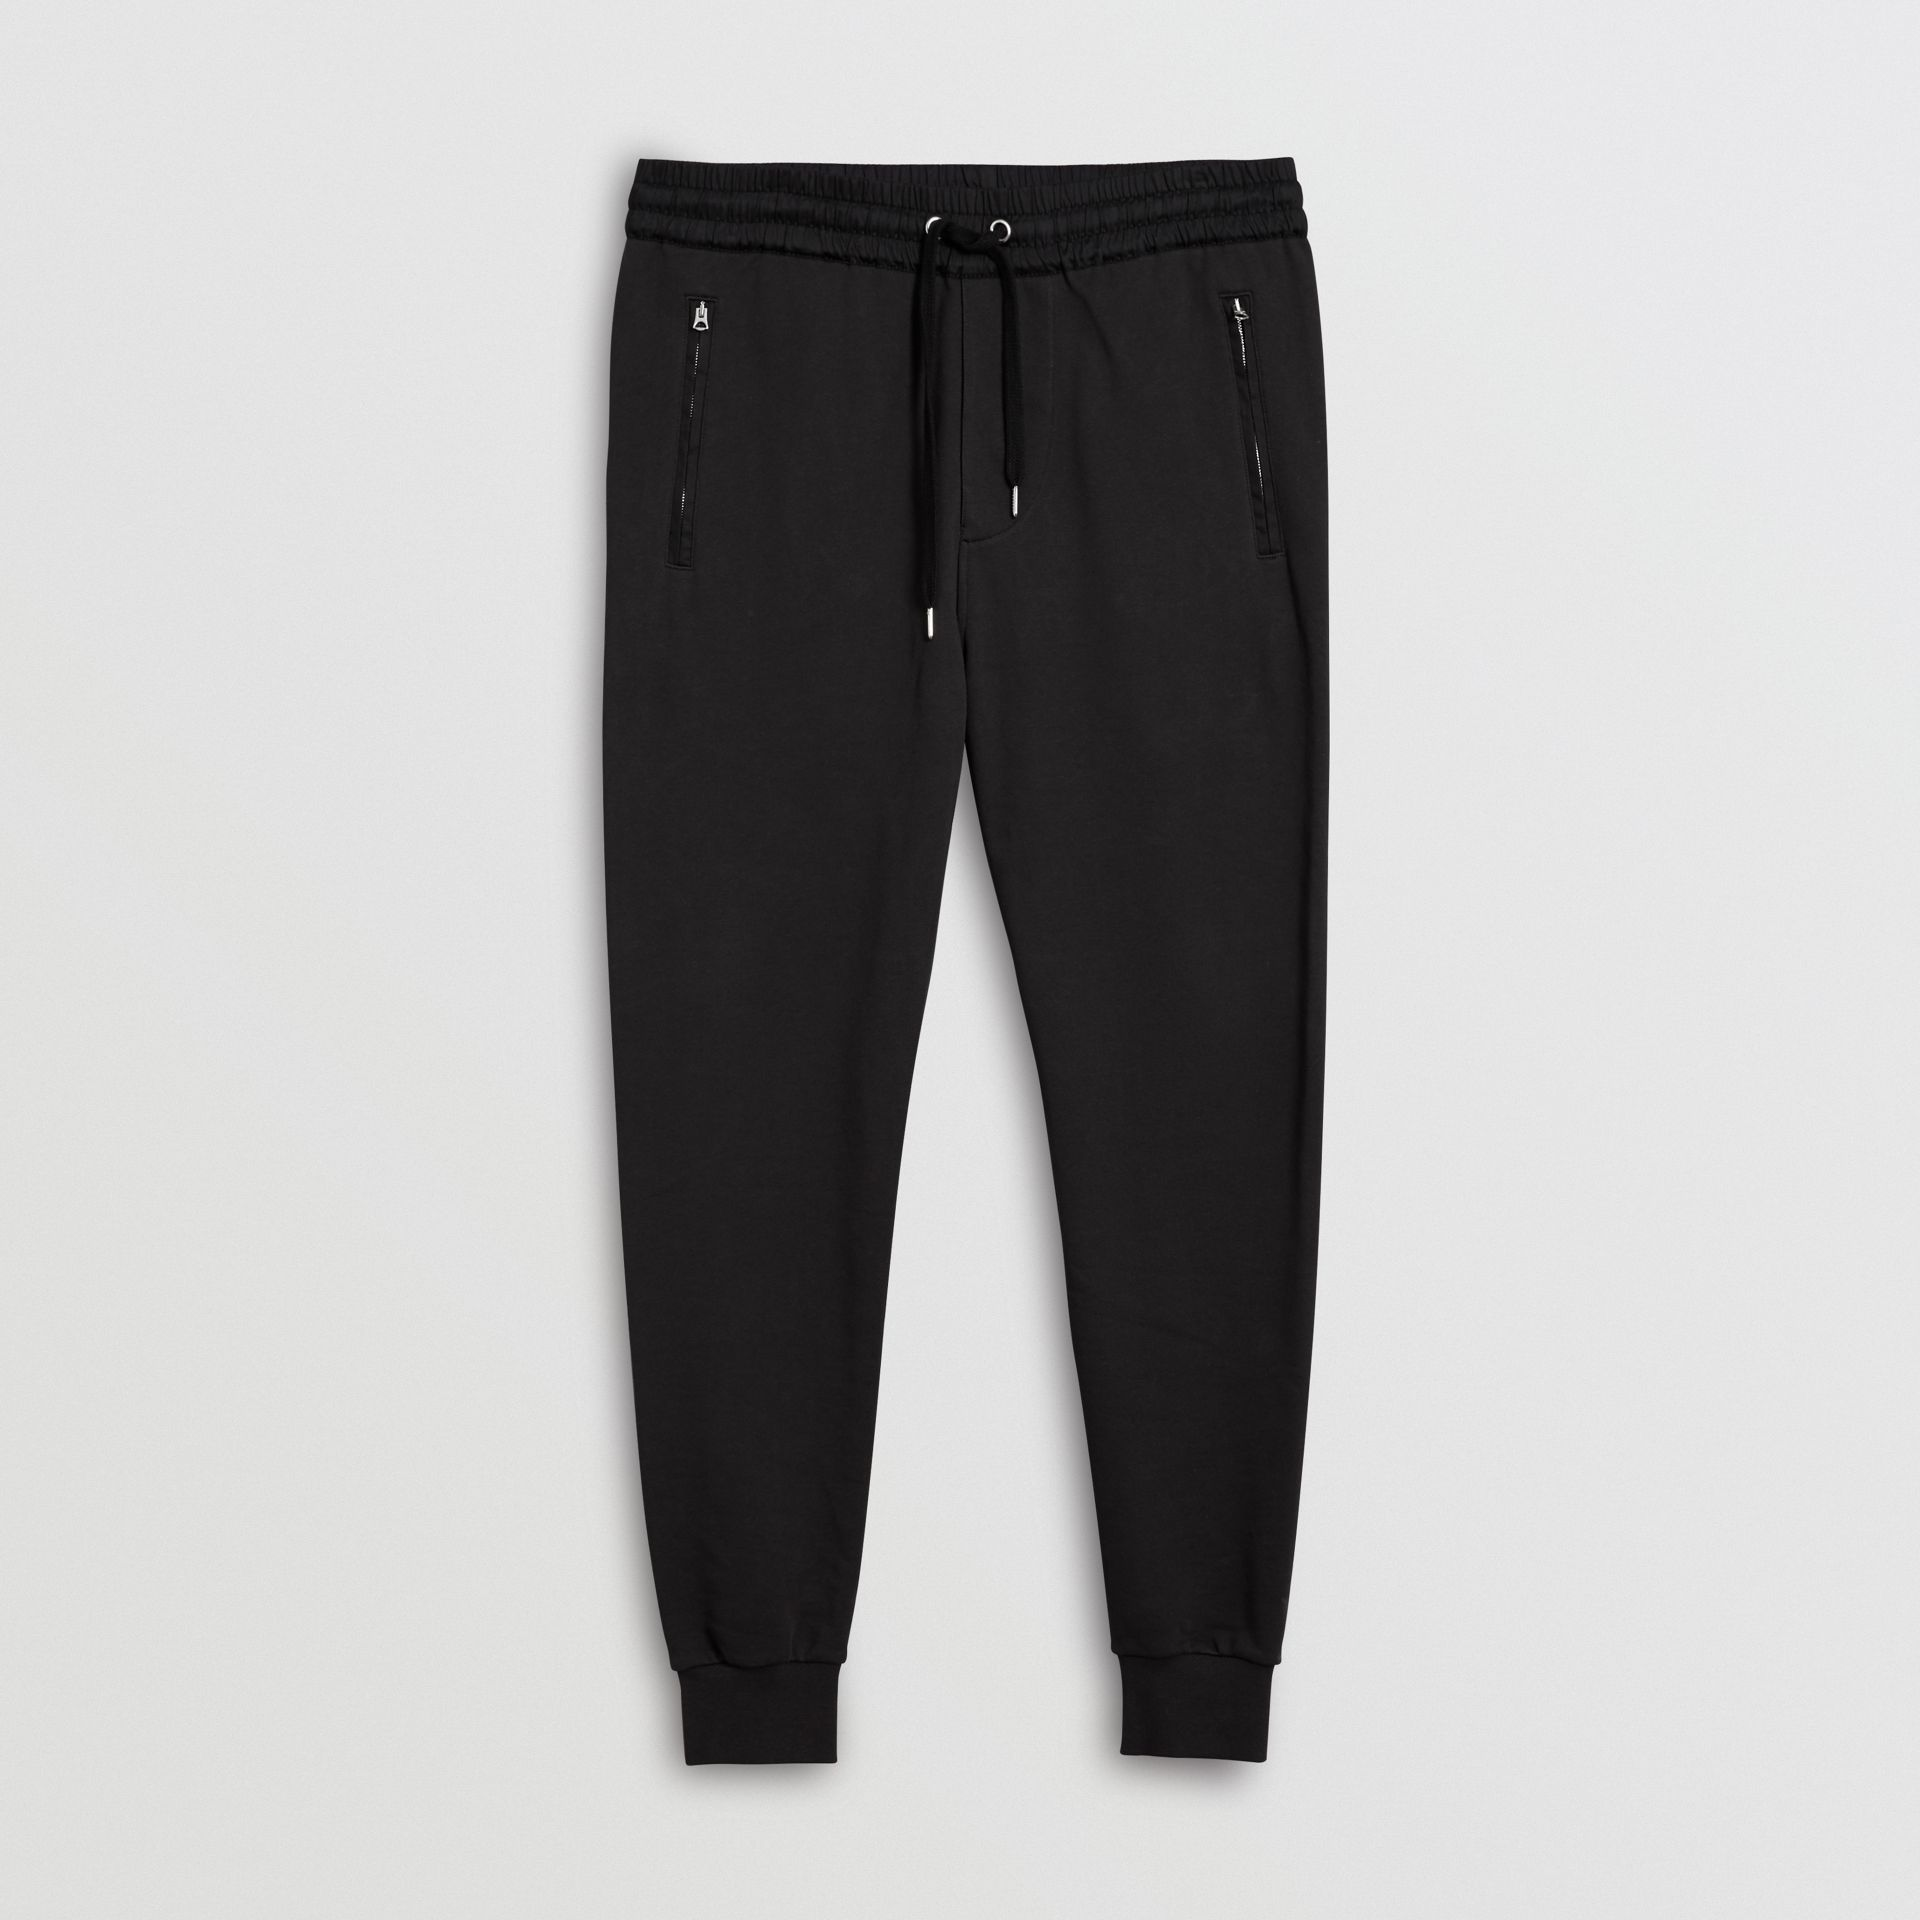 Pantalon de survêtement en coton (Noir) - Homme | Burberry - photo de la galerie 3